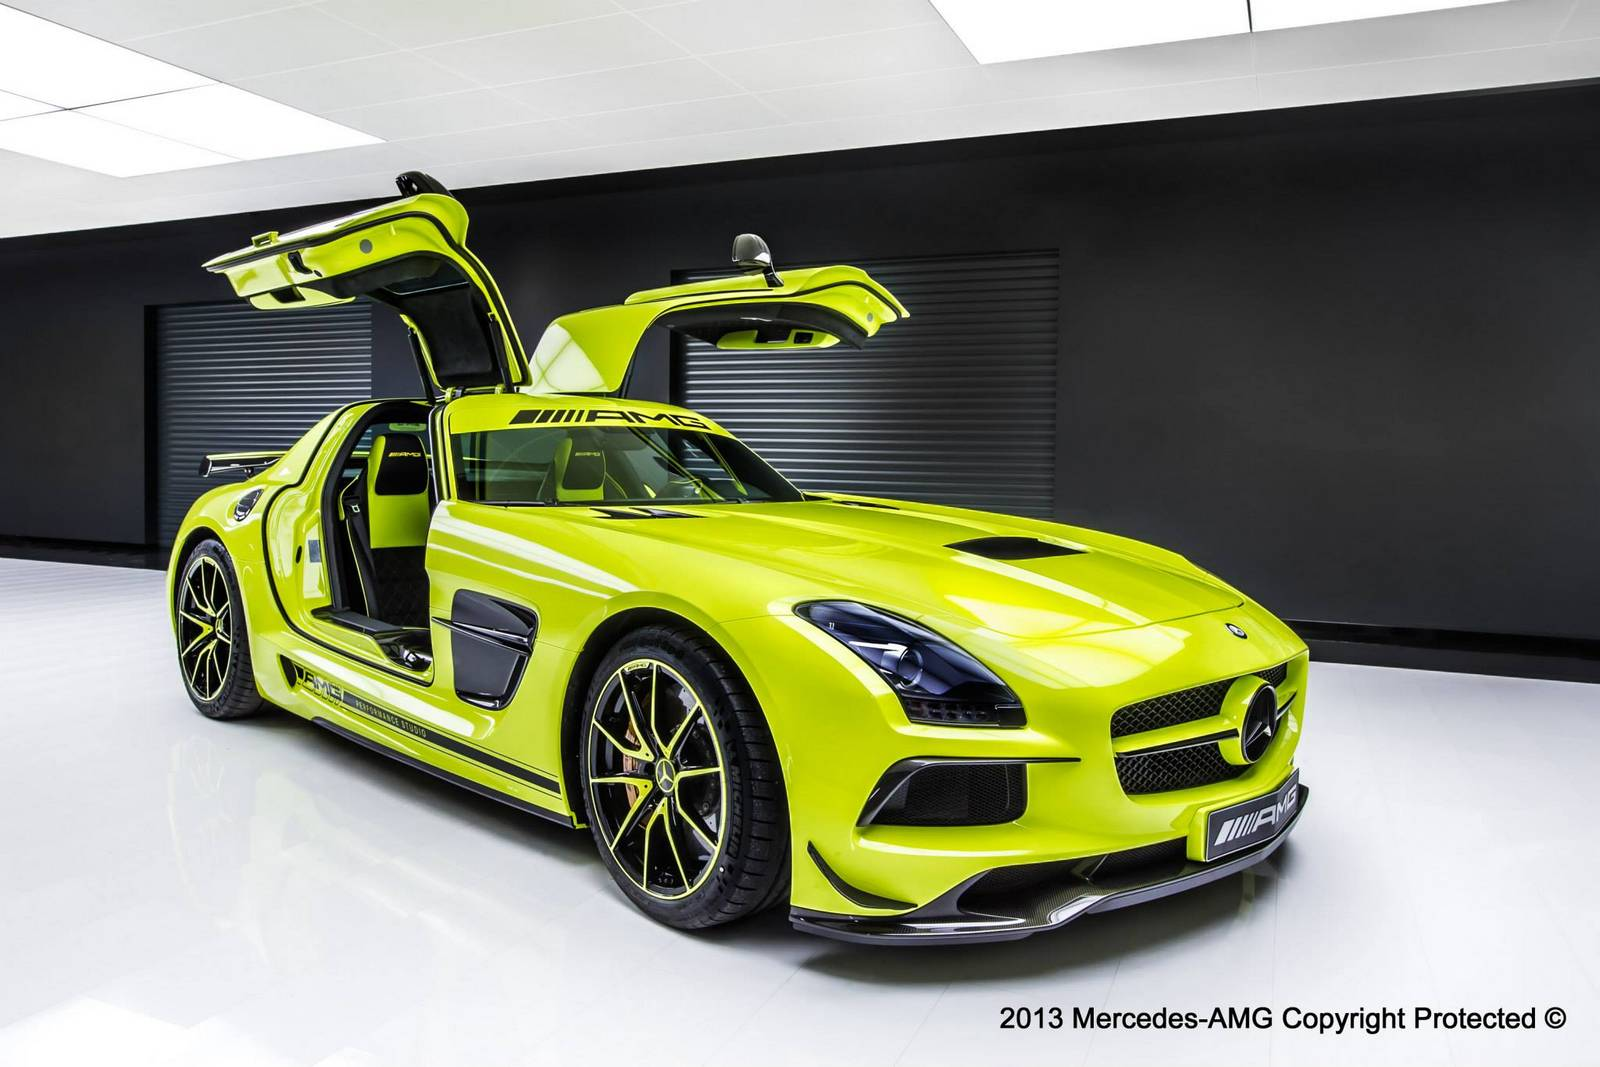 official mercedes benz sls amg black series by amg performance studio gtspirit. Black Bedroom Furniture Sets. Home Design Ideas